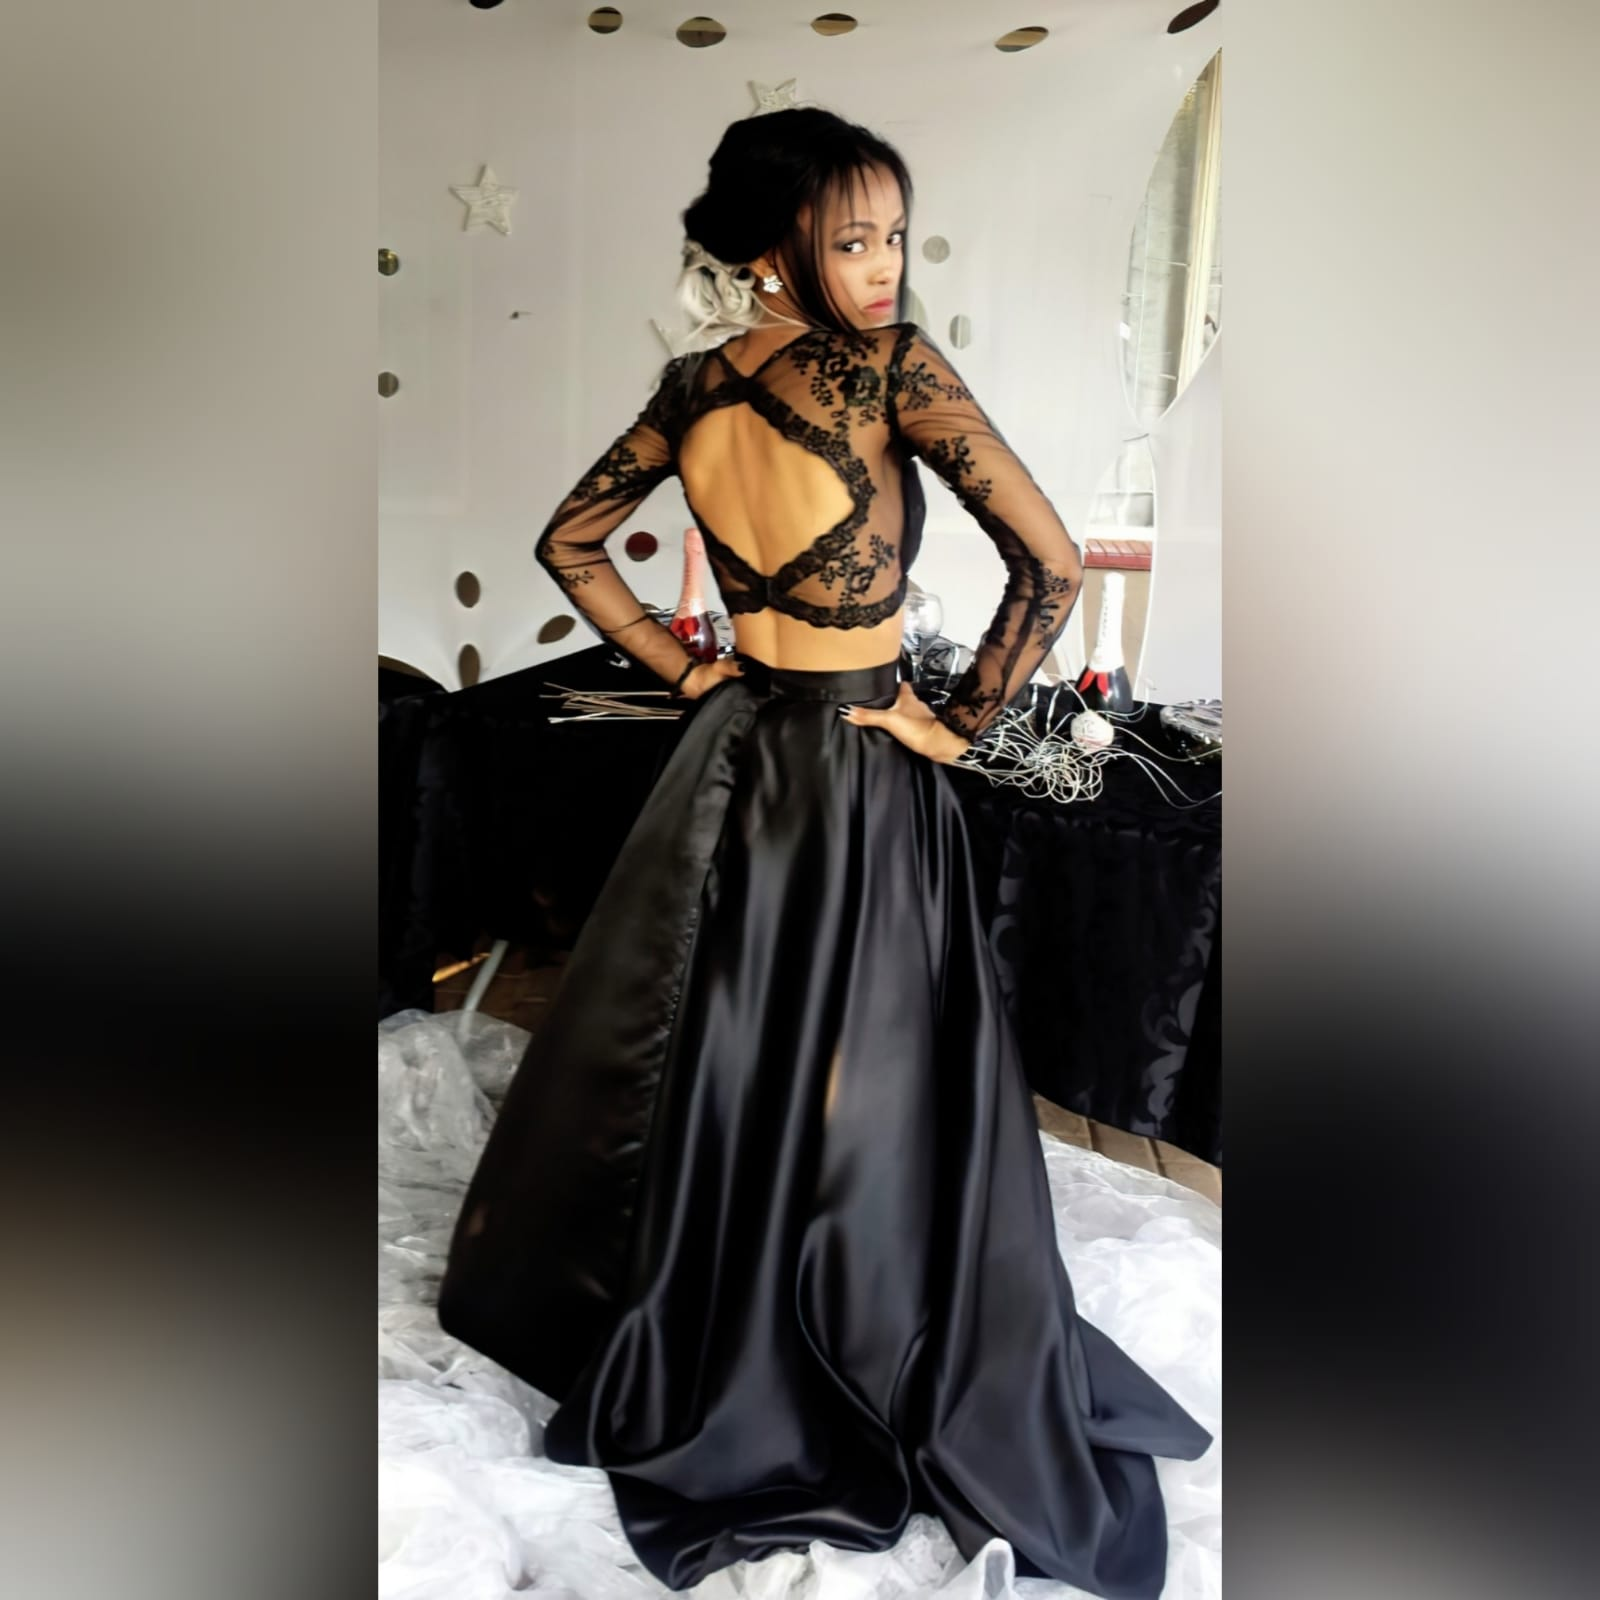 2 piece black prom dress with lace top 1 my client looked stunning in the 2 piece black prom dress i created for her. A lace top with sheer neckline and long sleeves, with a diamond shape opening. With a wide, flowy duchess's satin skirt